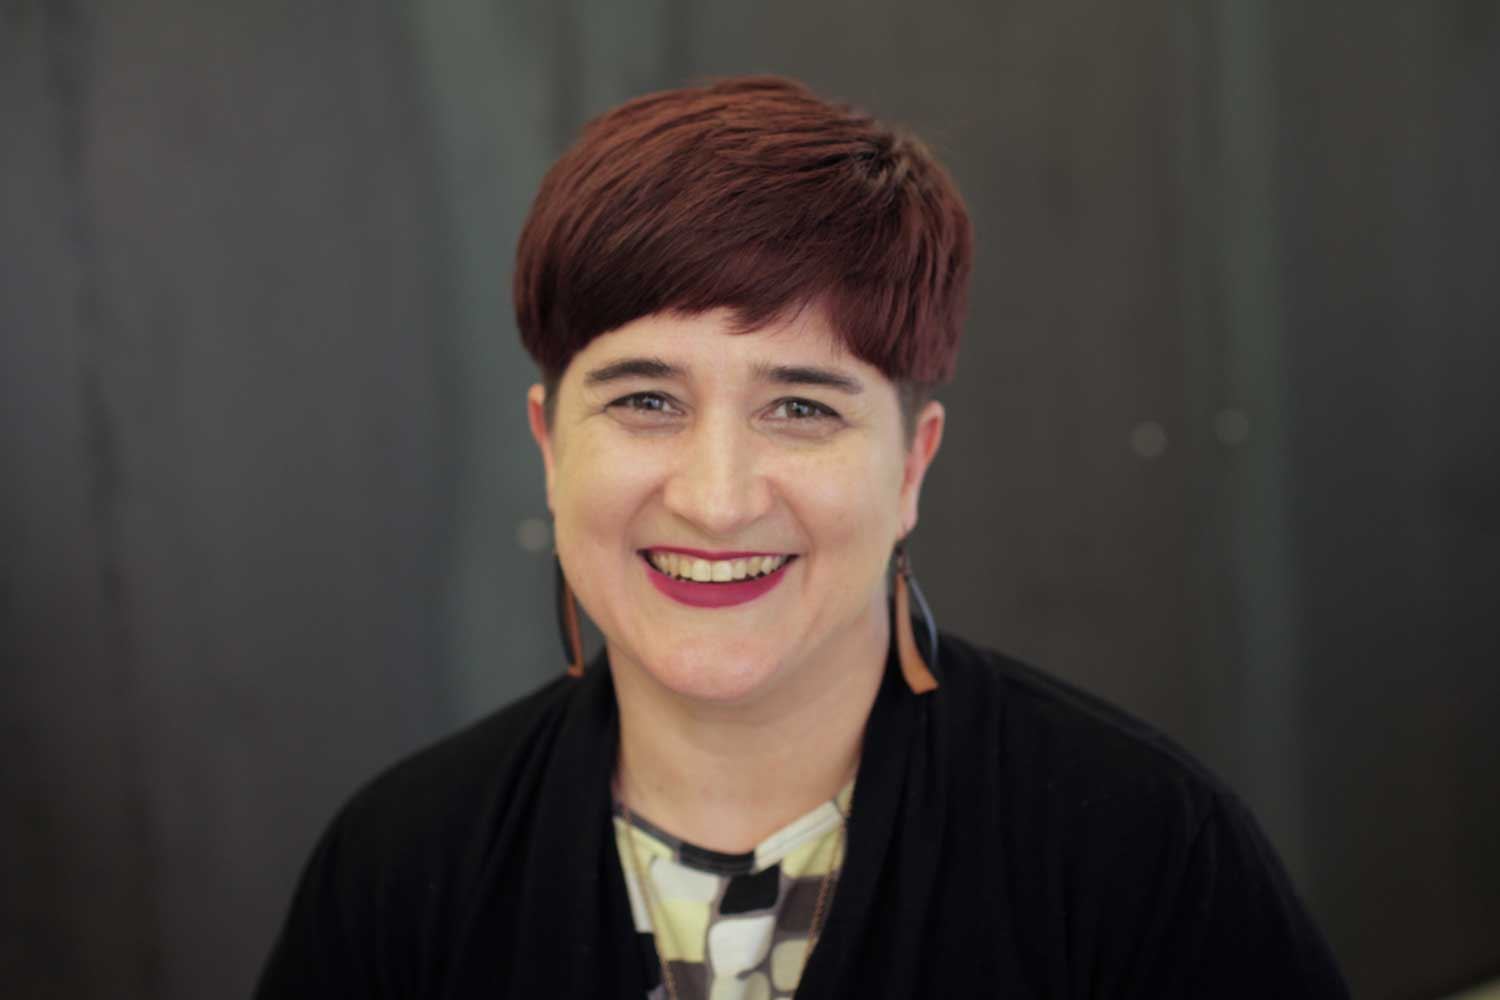 Janine Anderson - Engagement Strategist - Product Insight Lead